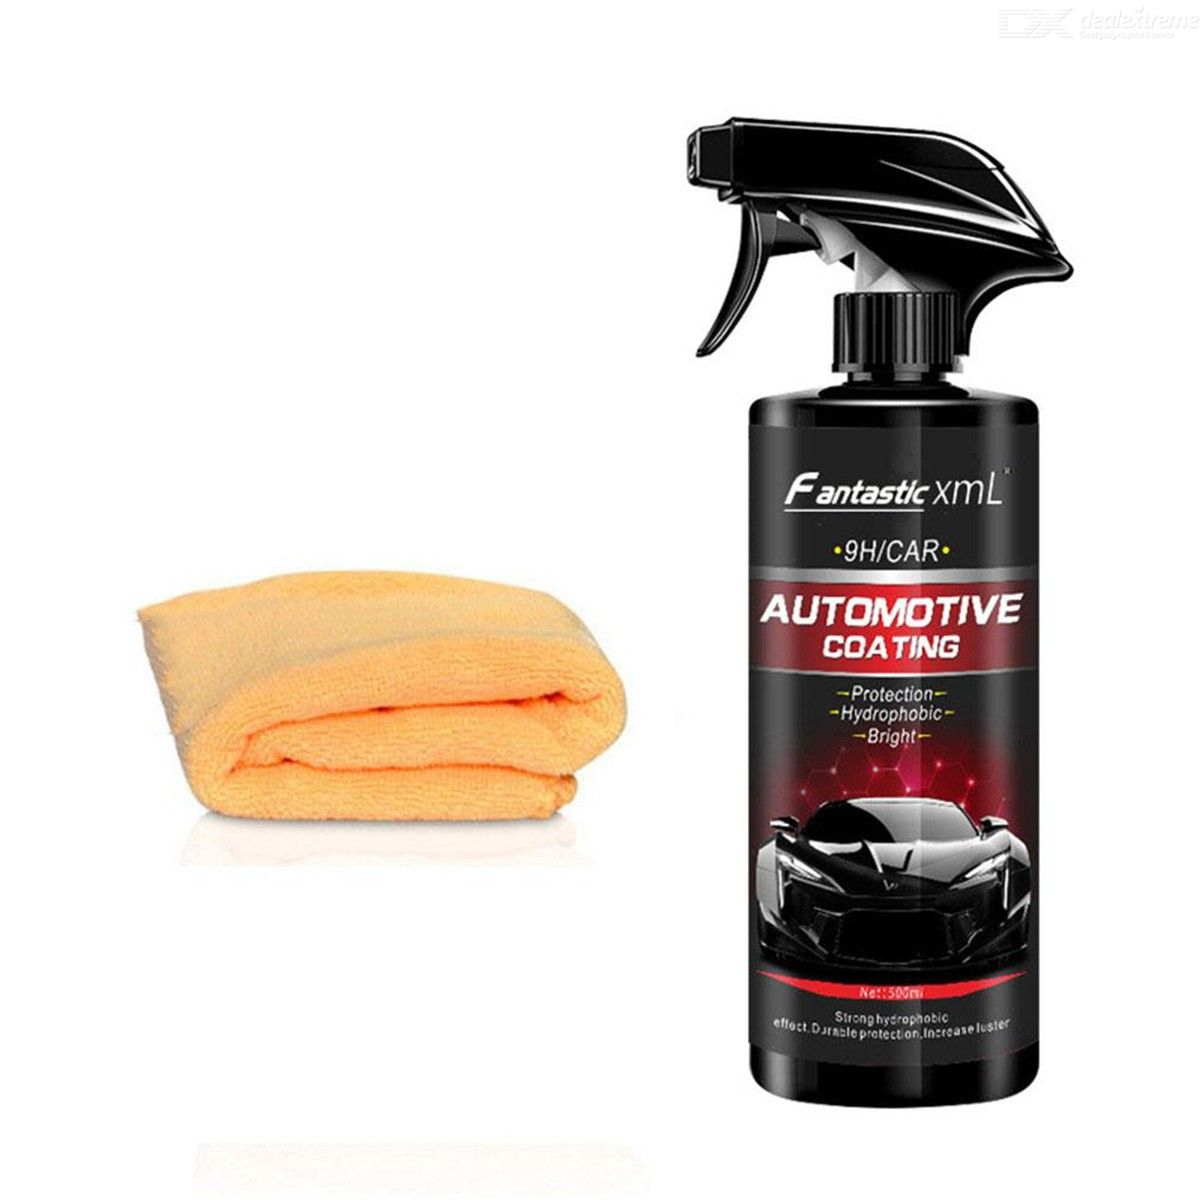 500ML Automotive Nano Coating Liquid Car Polish Spray Sealant, Quick Nano-Coating Car Spray Wax